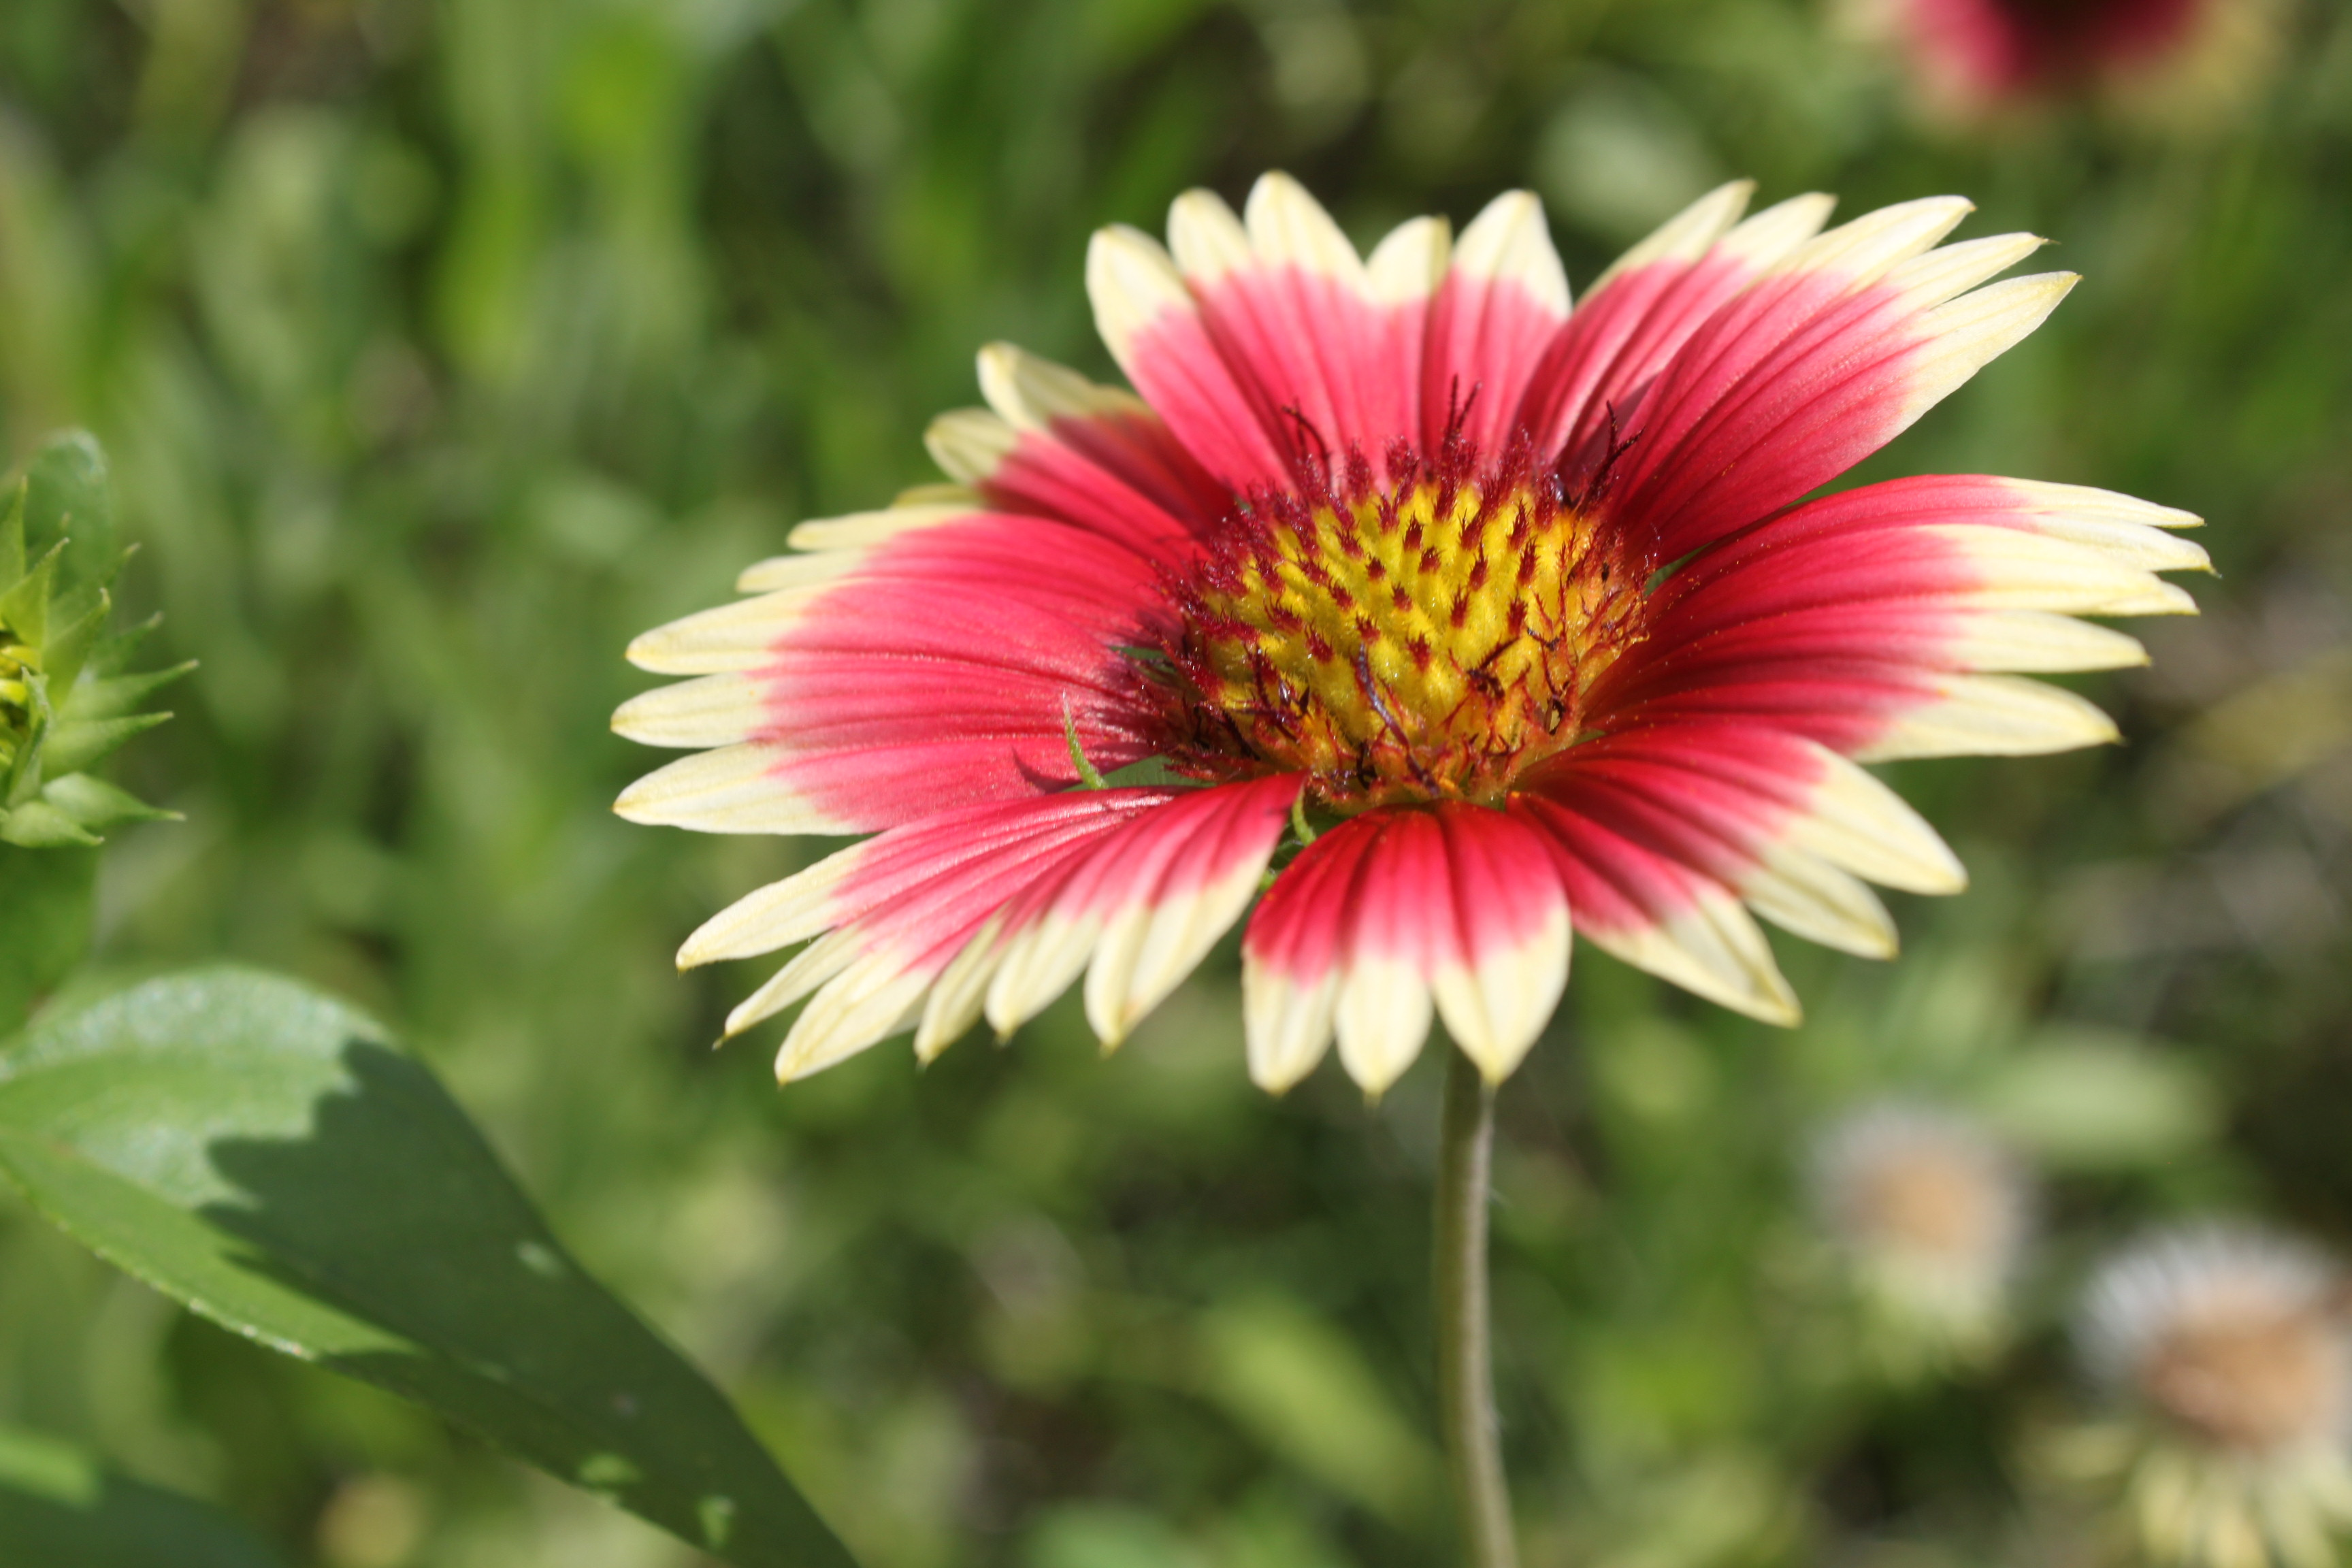 This blanket flower is an example of an autotroph because it uses WIn62EhV